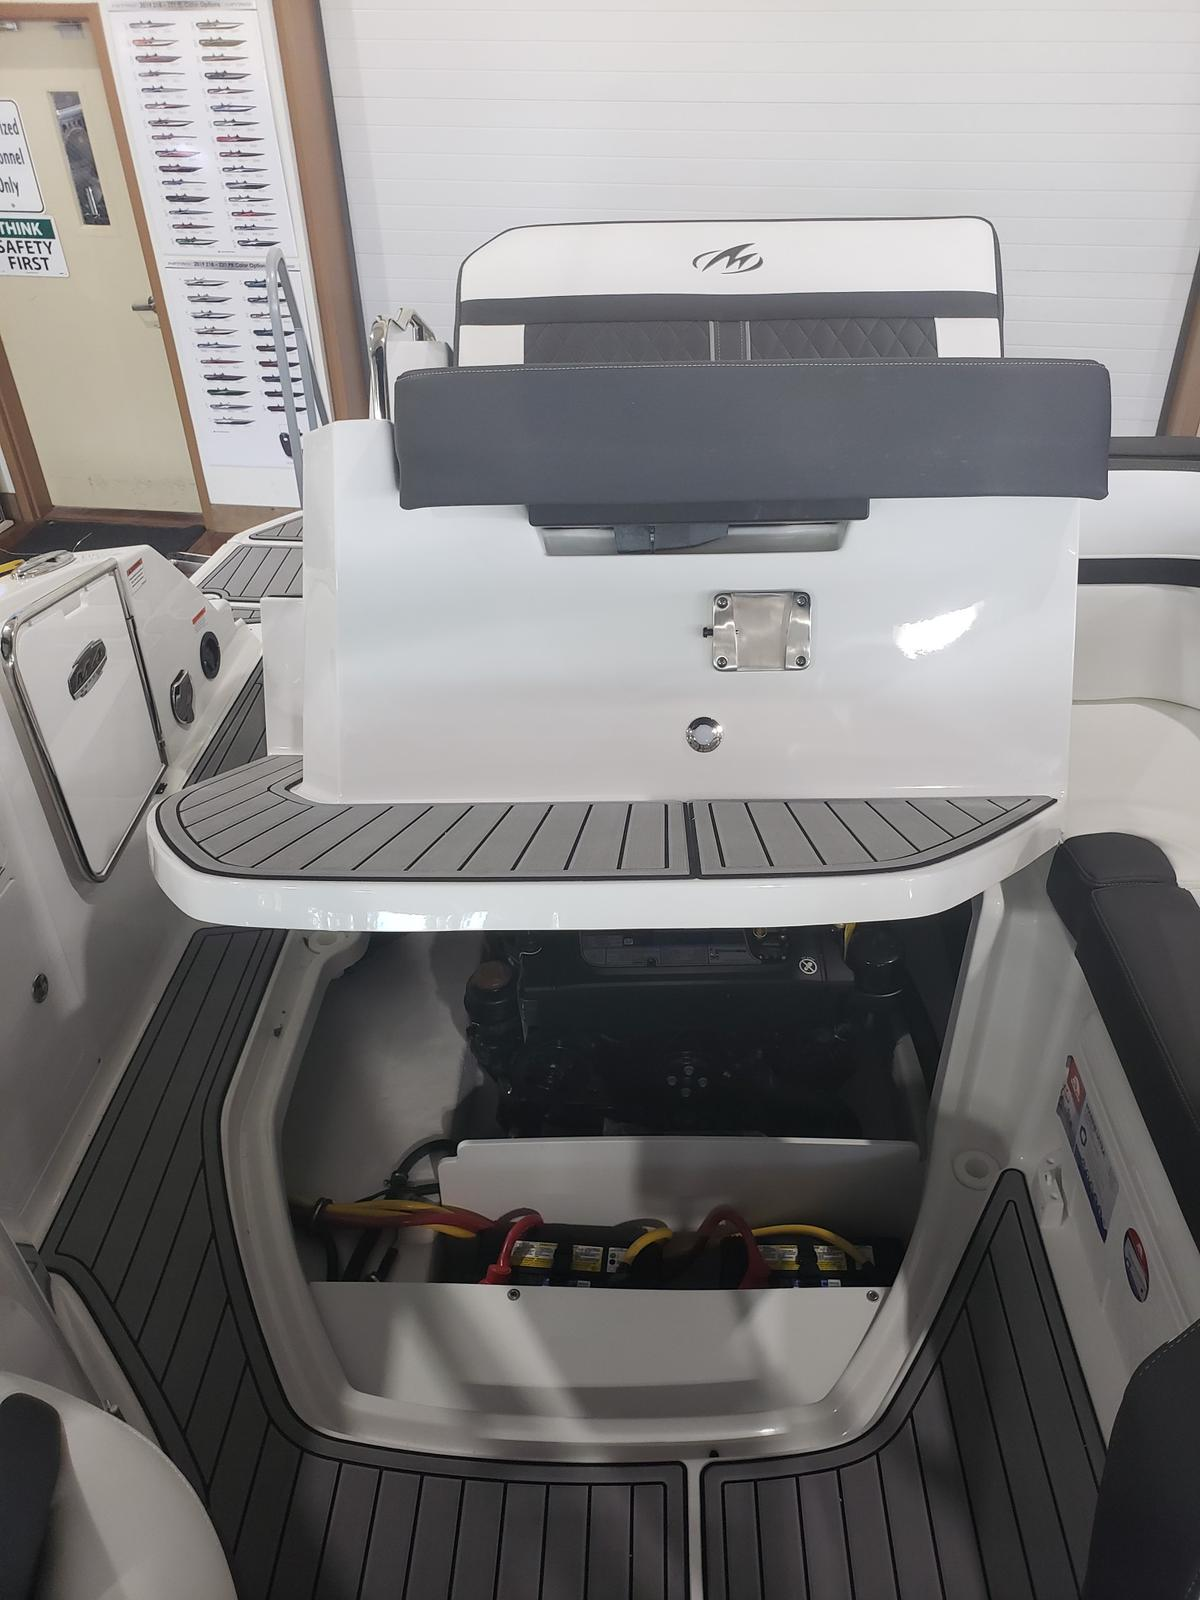 2019 Monterey boat for sale, model of the boat is M4 w/ I/O Mercruiser 300HP CAT.2.2 BR3 & Image # 1795 of 2574